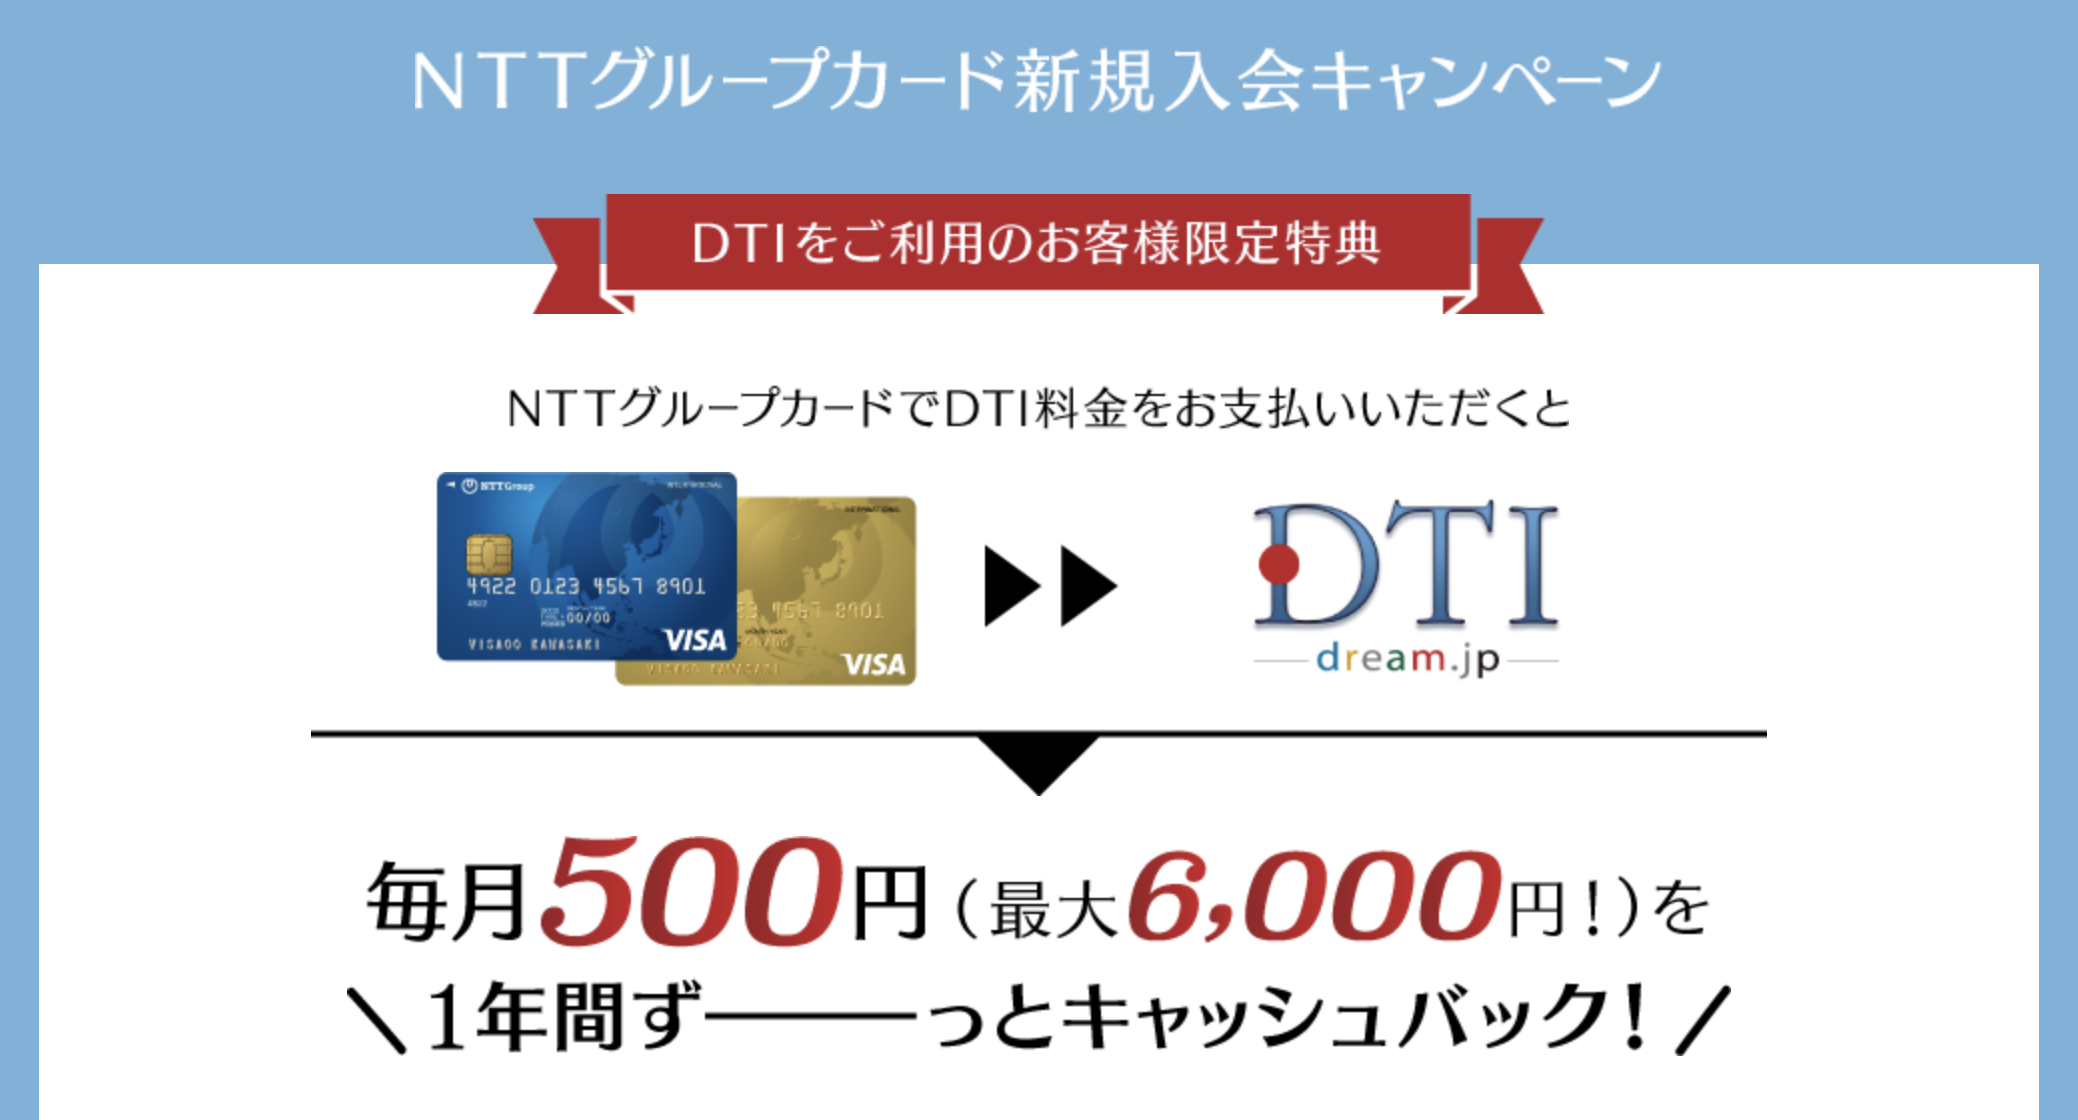 DTI_WiMAX2+_キャッシュバック